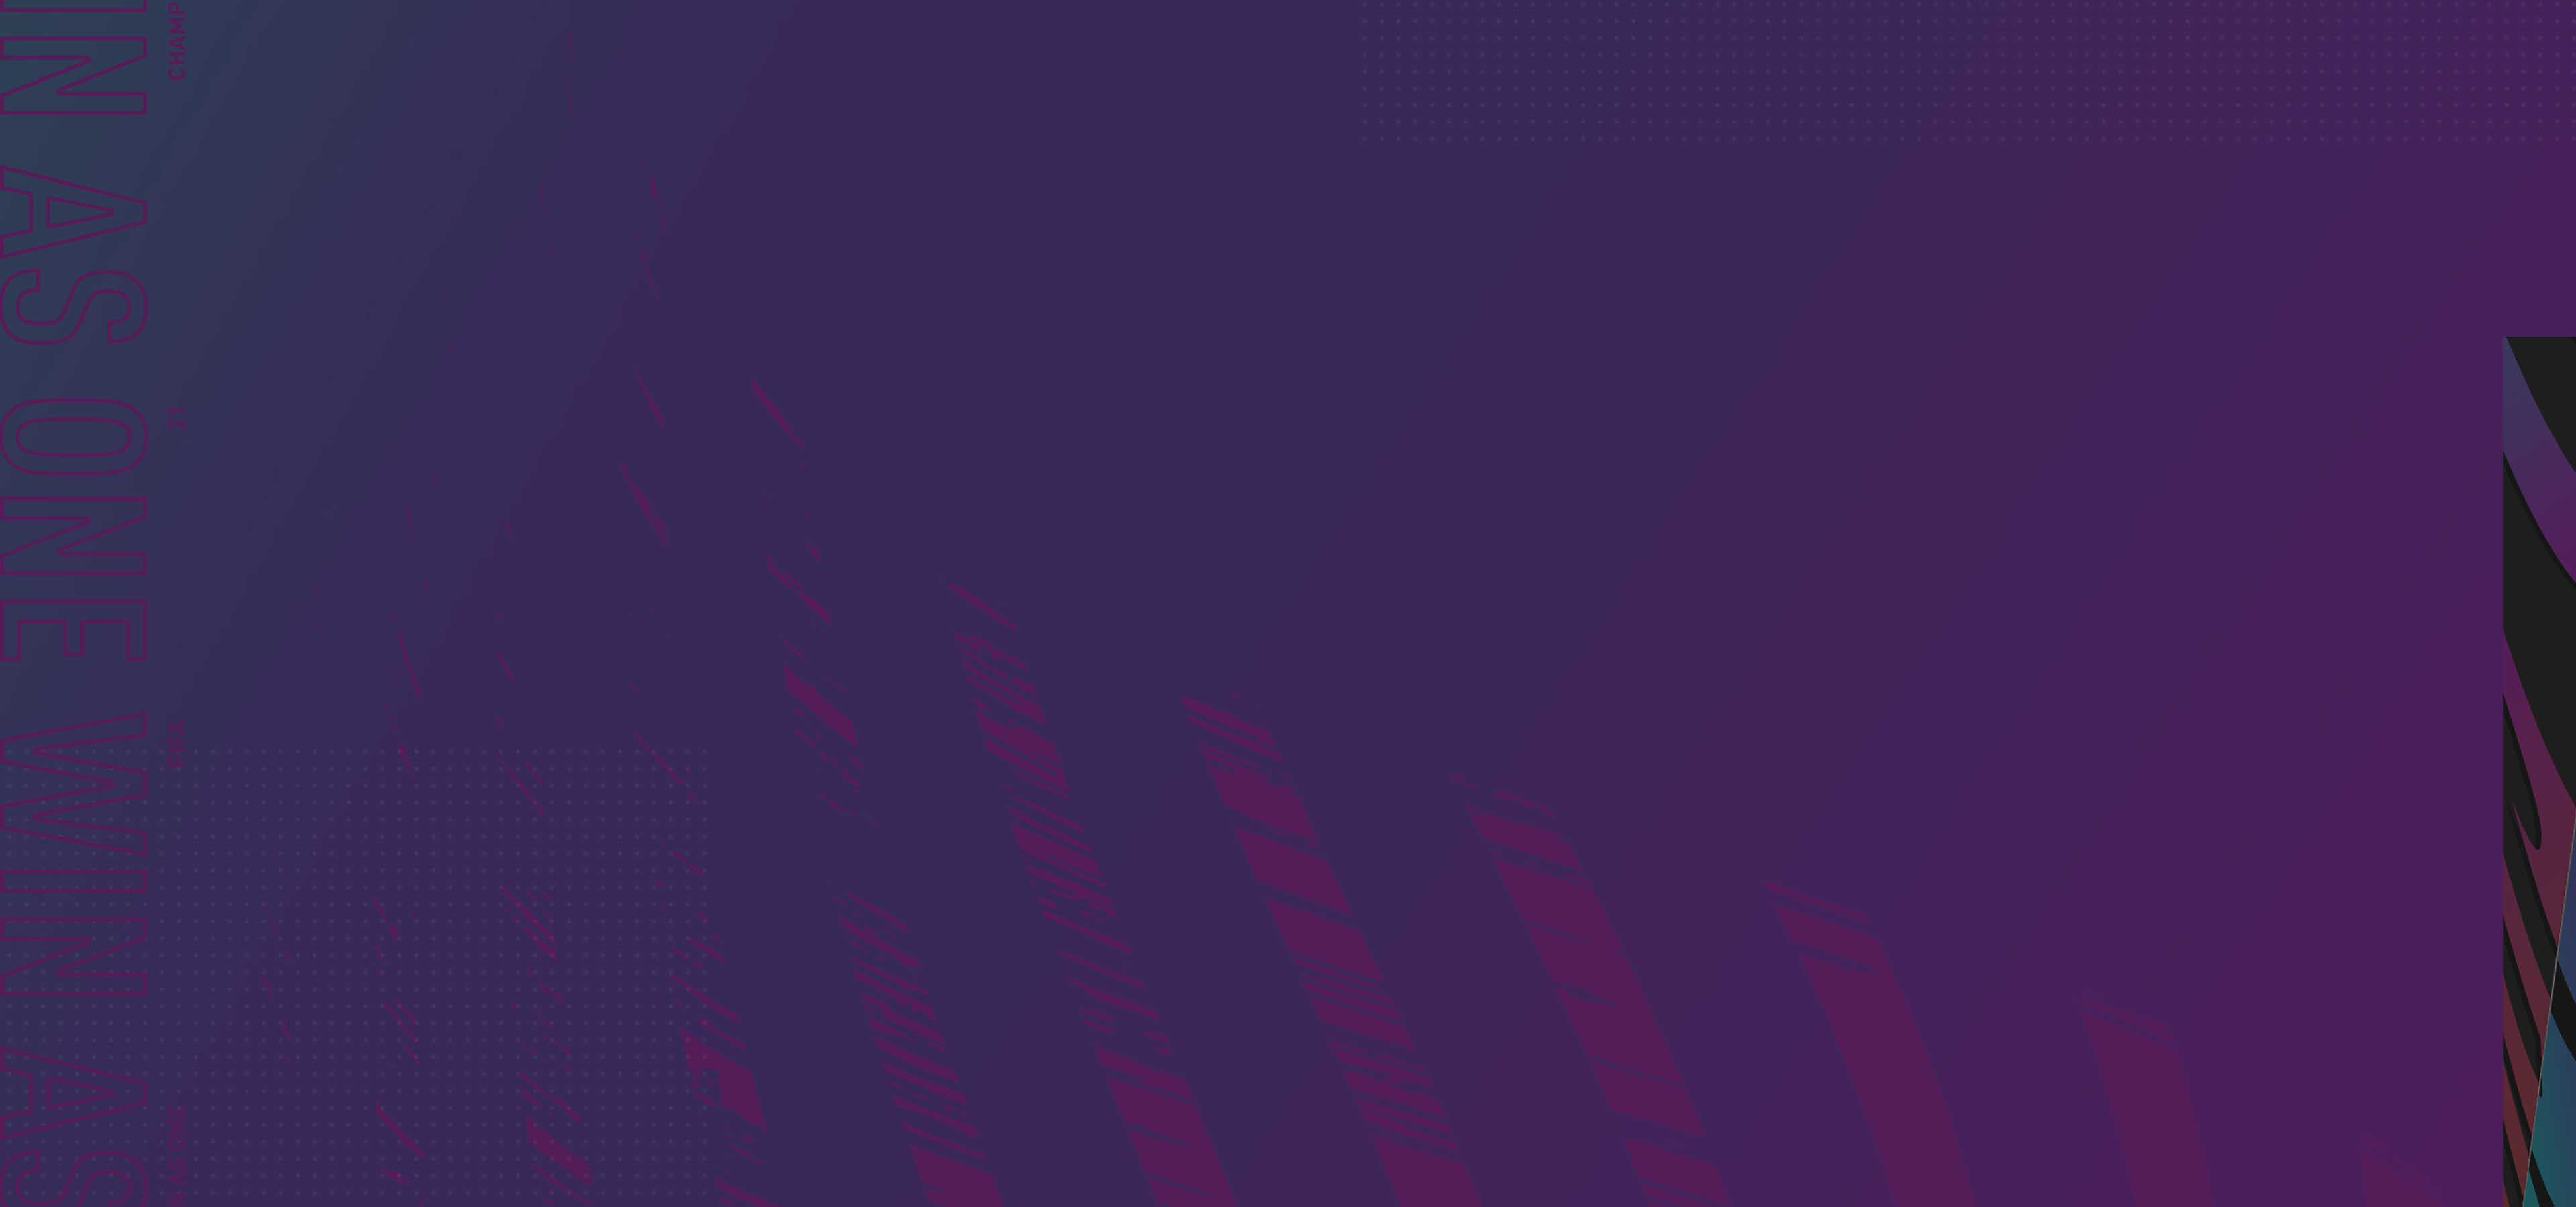 FIFA 21 graphic background